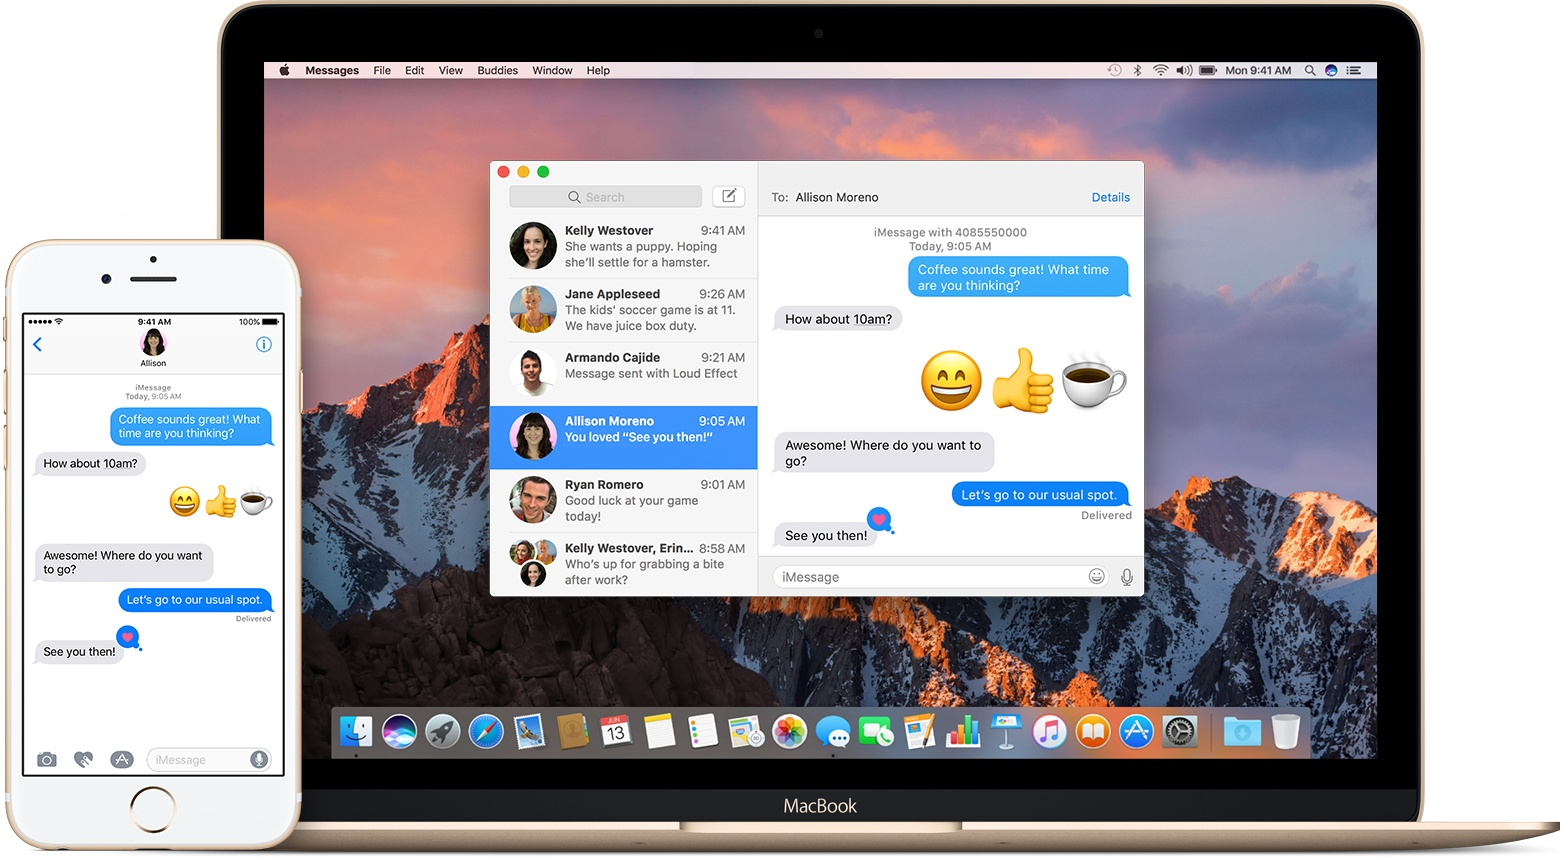 macos-ios10-imessage-hero.jpg